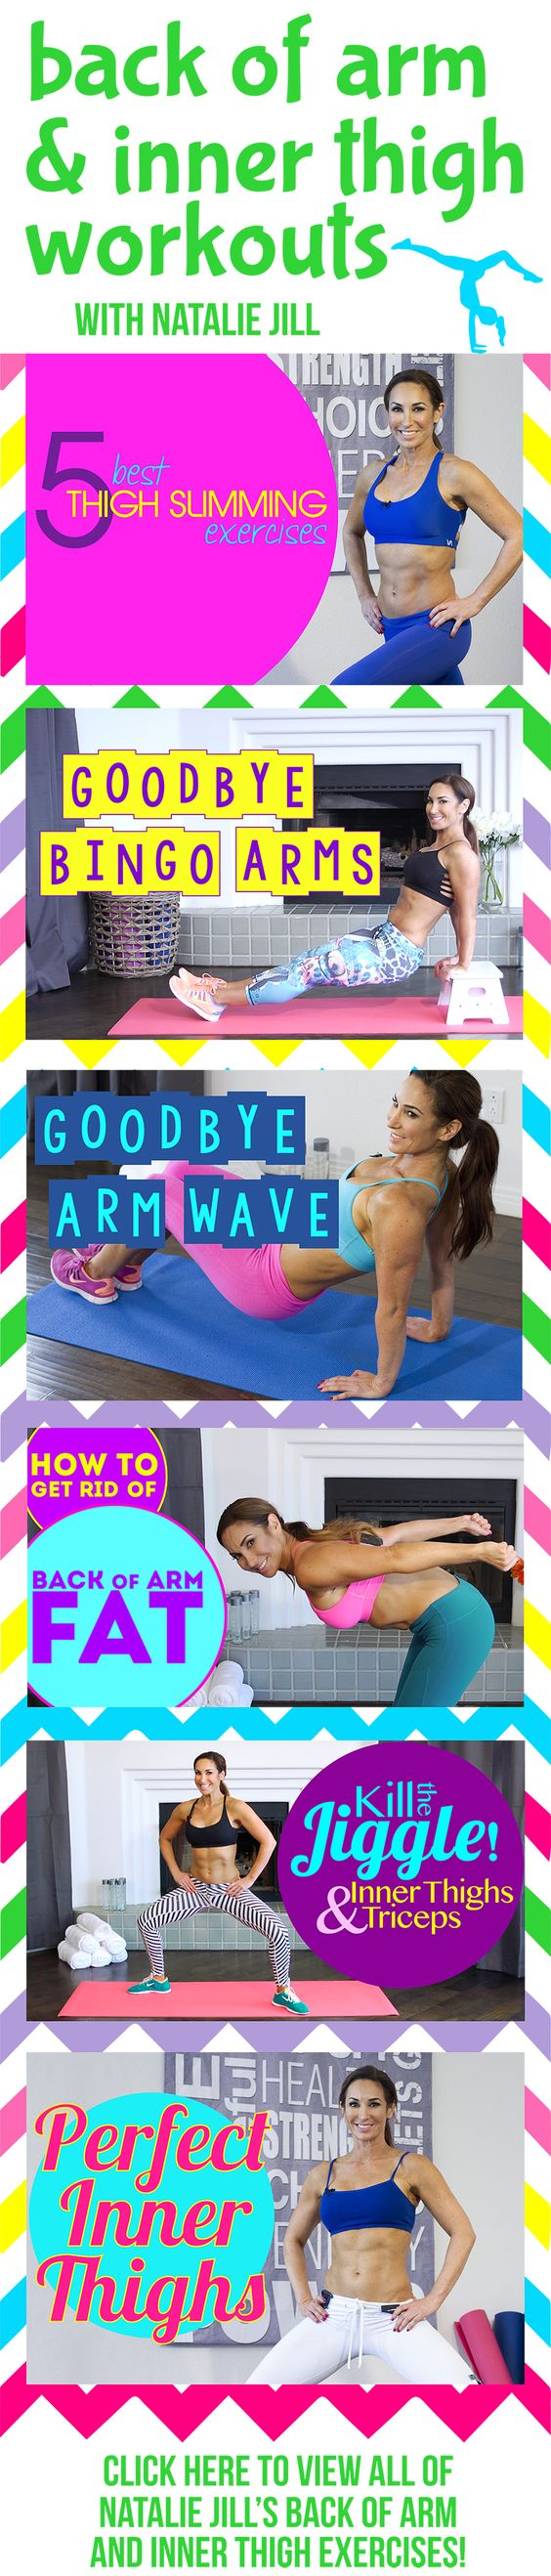 Back of Arm and Inner Thigh Workouts! Click below for the FULL video.